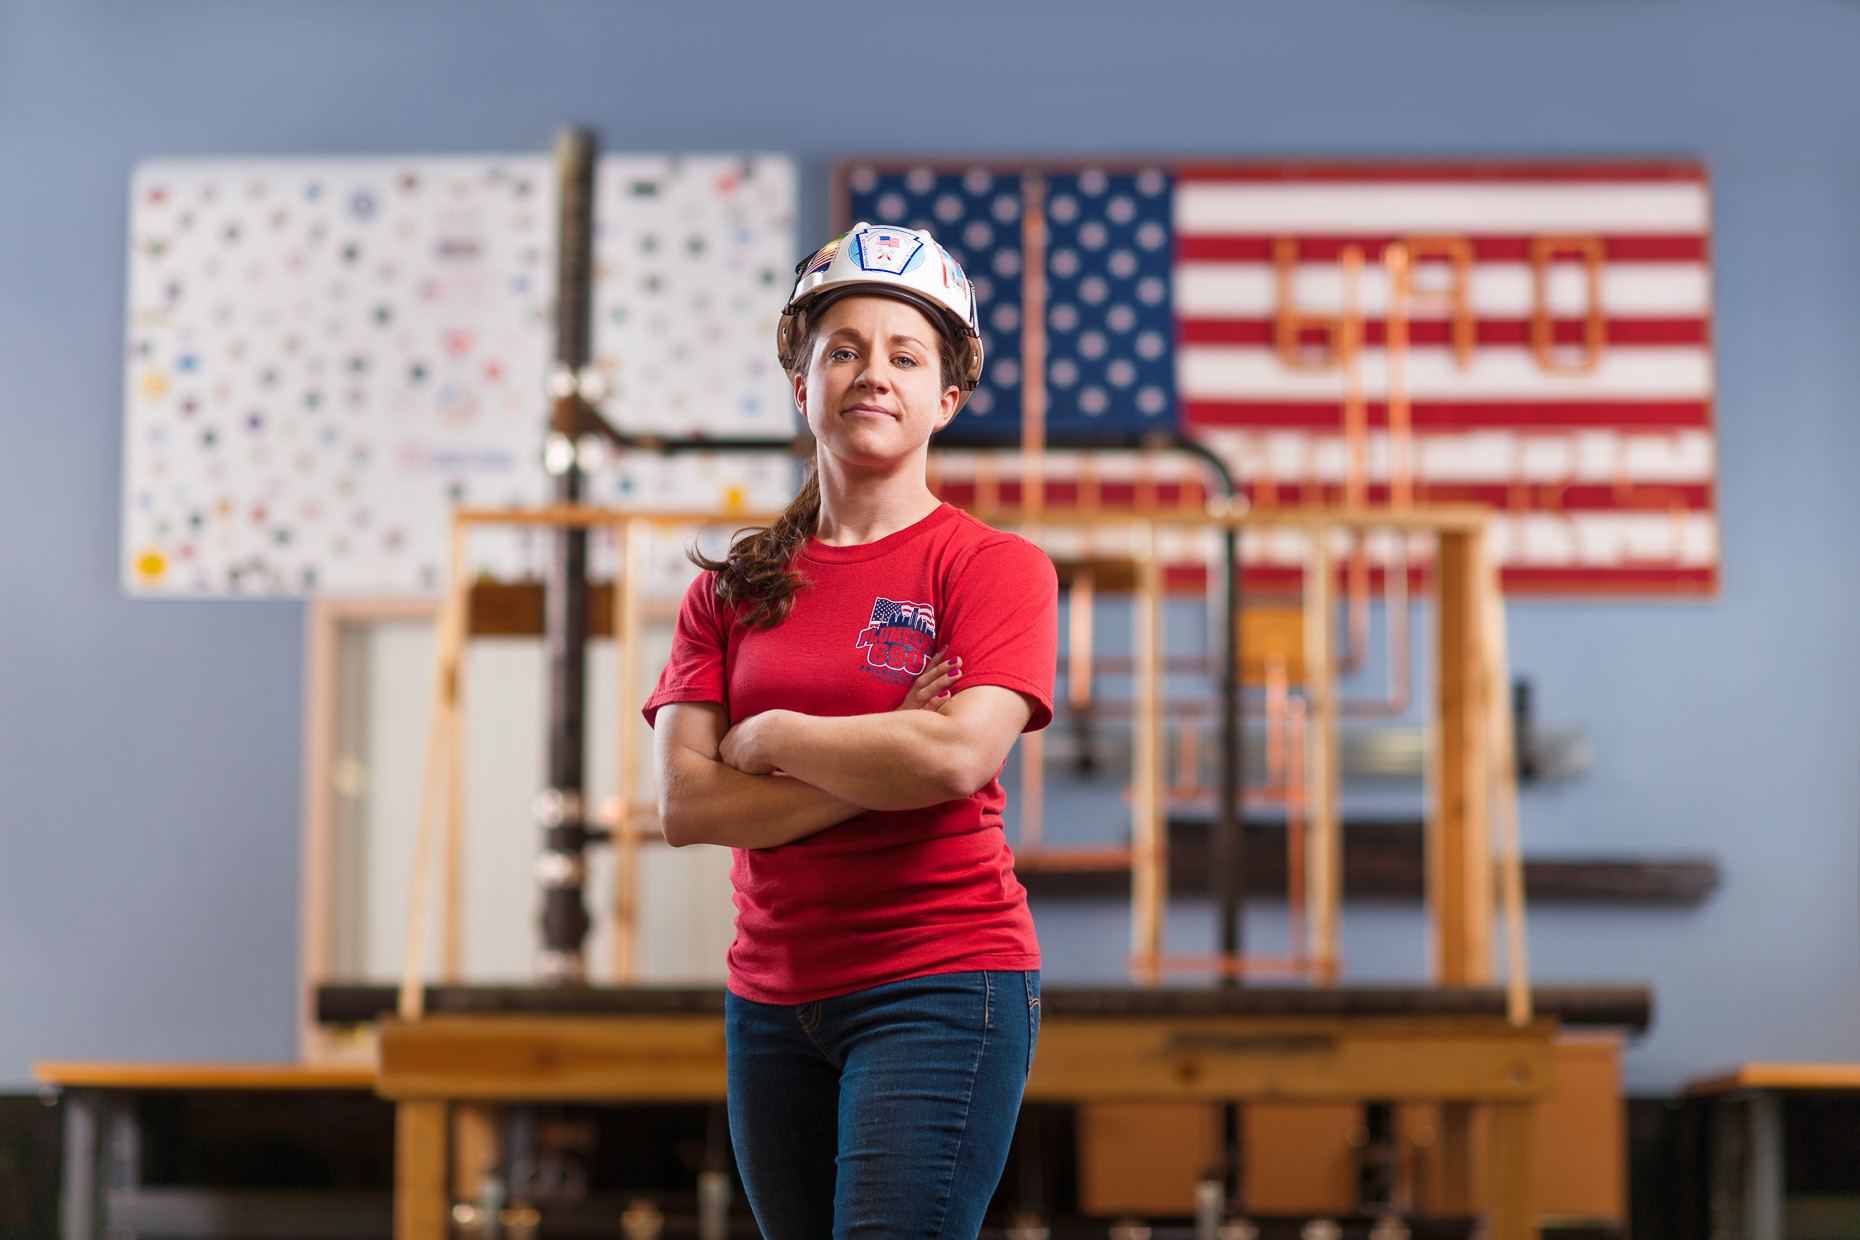 Female Plumber | USA Flag | Editorial Photographer